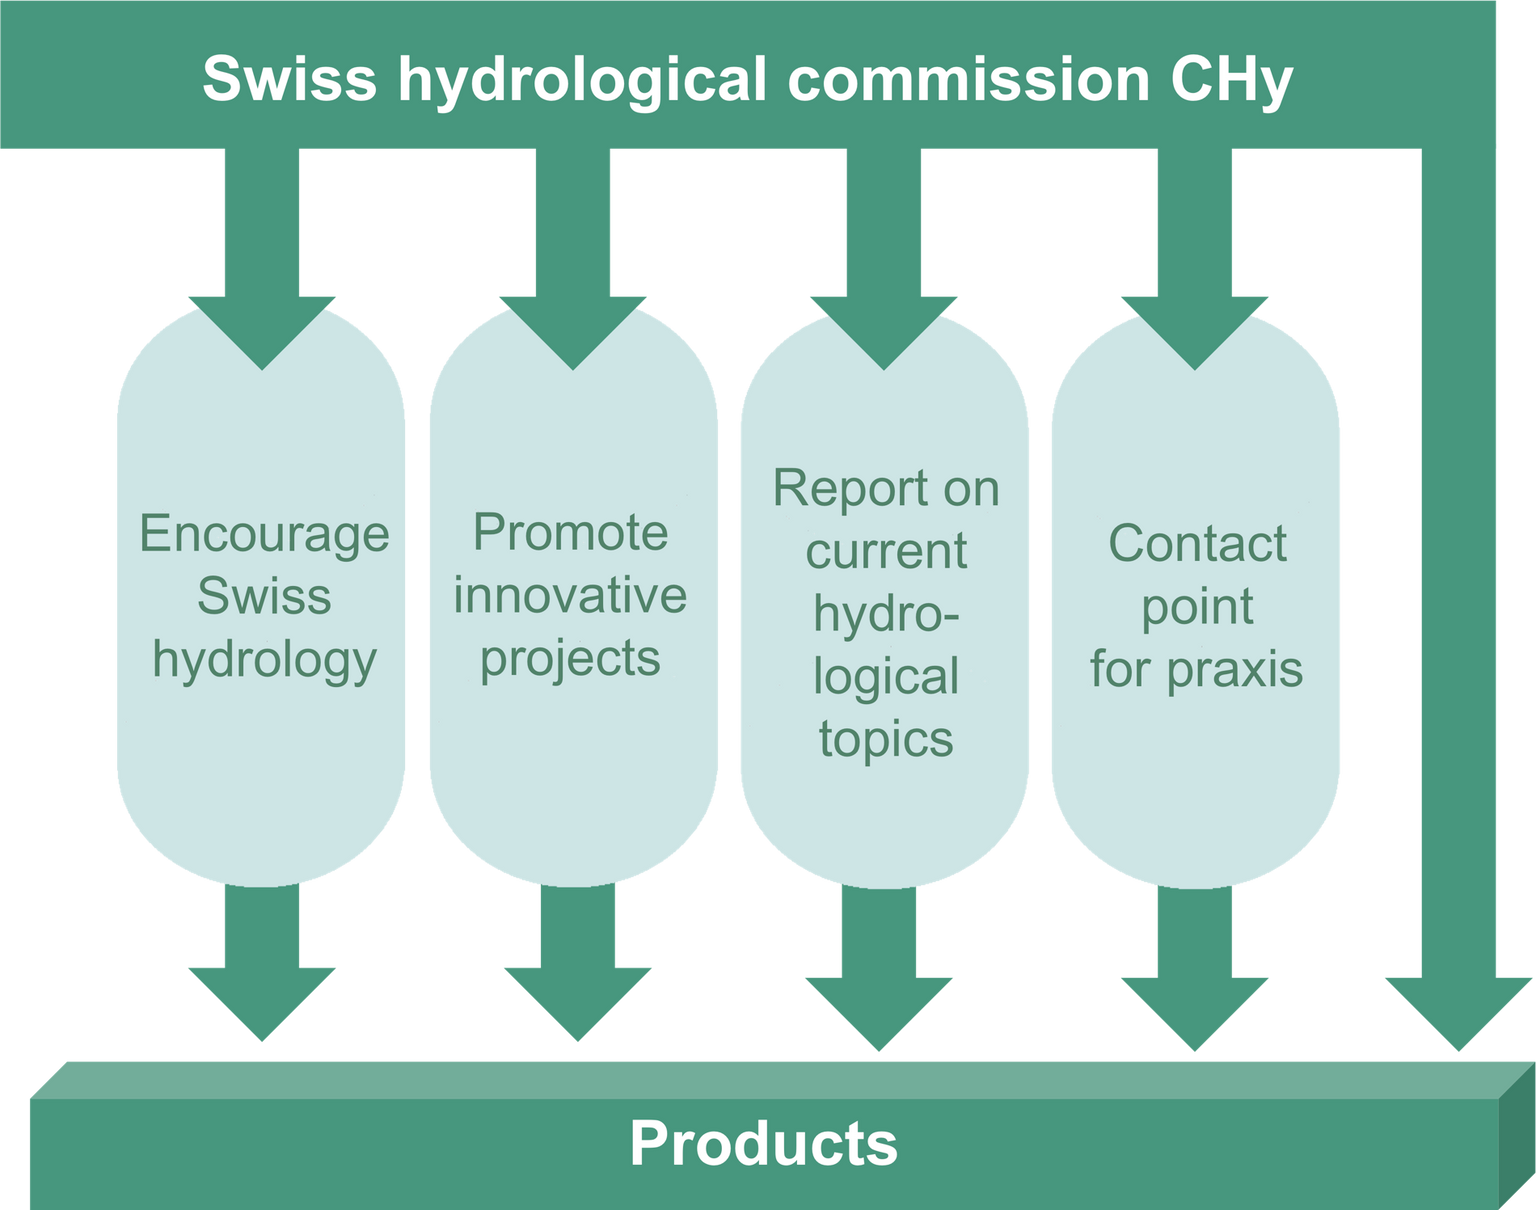 Four pillars of the activities of the Swiss Hydrological Commission